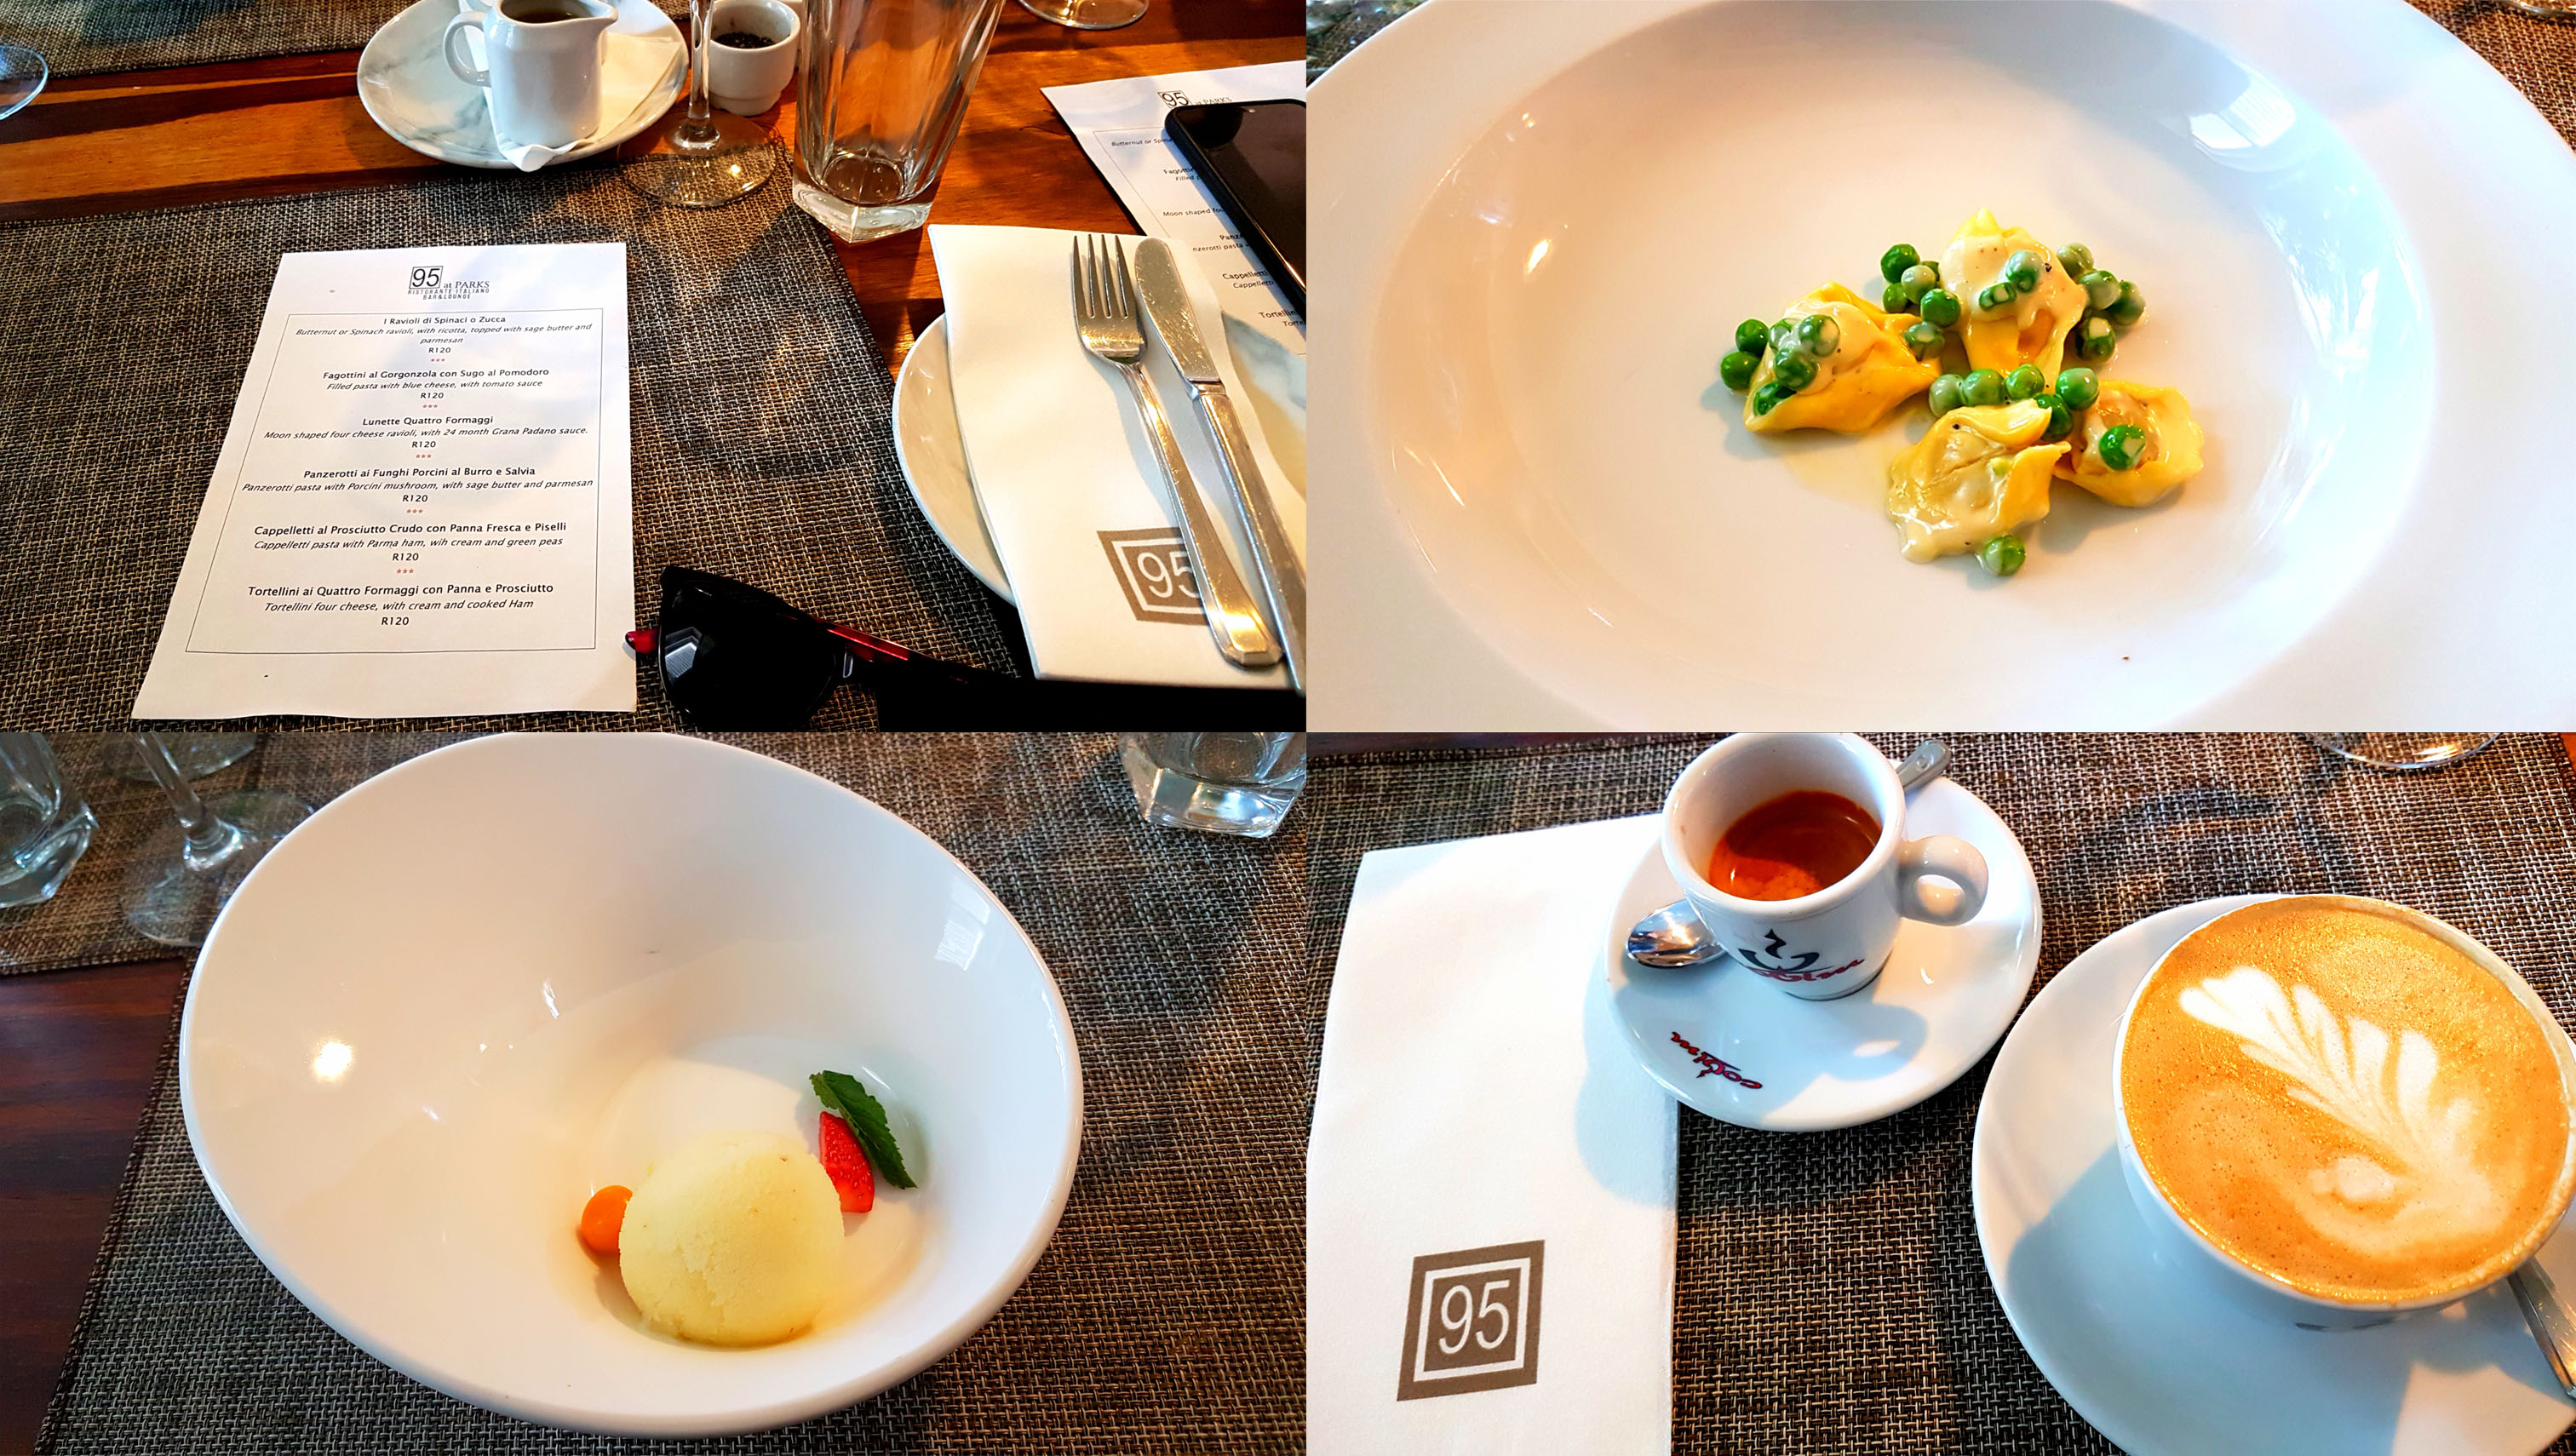 See the pasta ripiena menu, on offer until end-July, as well as the pea-and-ham cappelletti, pineapple sorbet and our espresso and cappuccino to end the meal. Click here for my official review on Biz, as well as a download of Chef Nava's recipes from the master class!